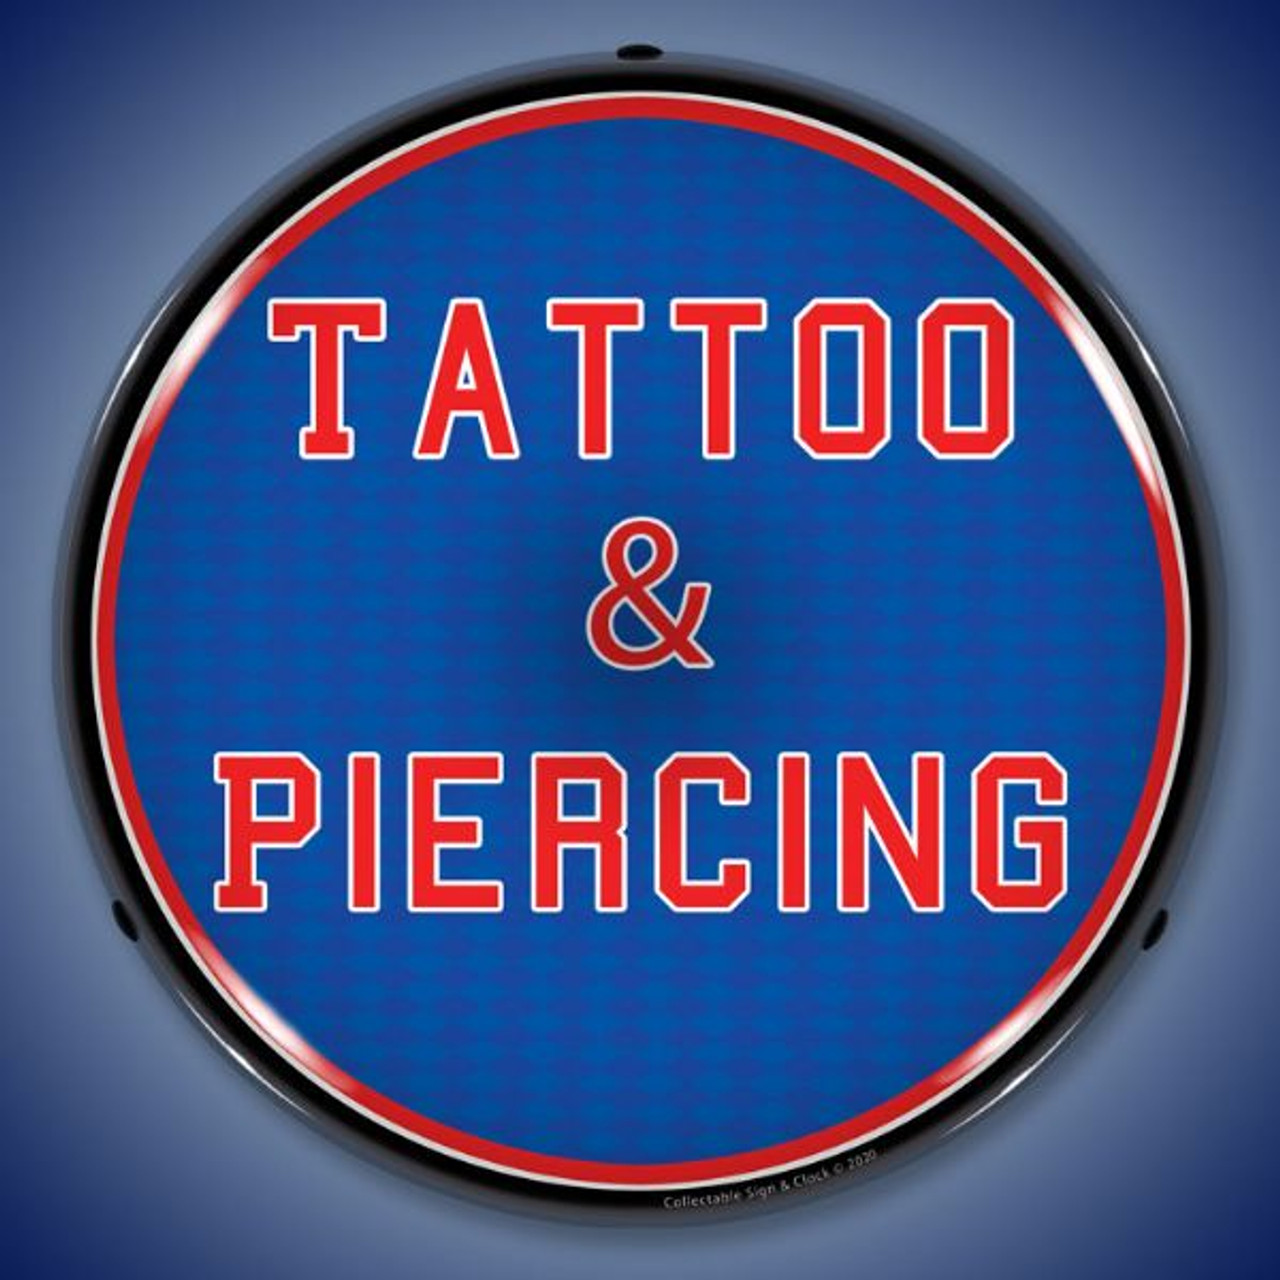 Tattoo & Piercing LED Lighted Business Sign 14 x 14 Inches